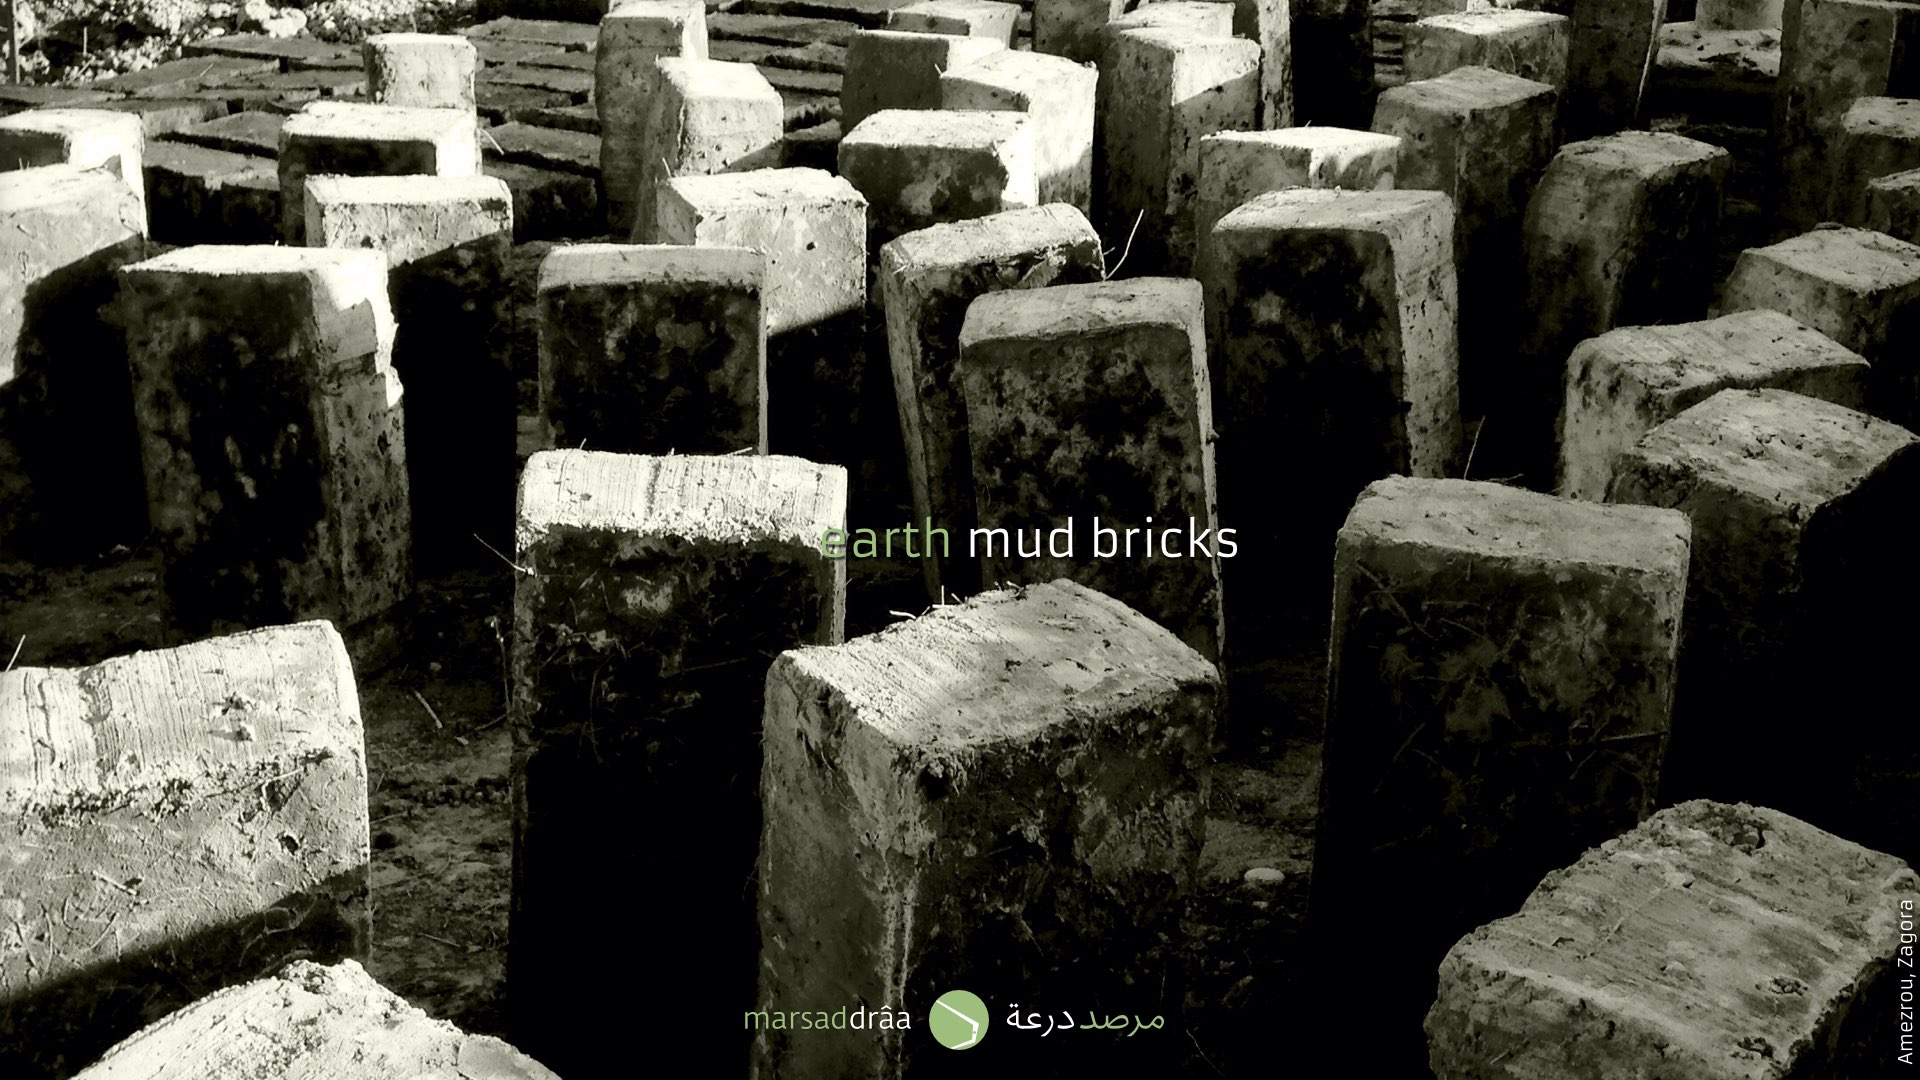 Most of the ksour are made on earth, using mud bricks or...